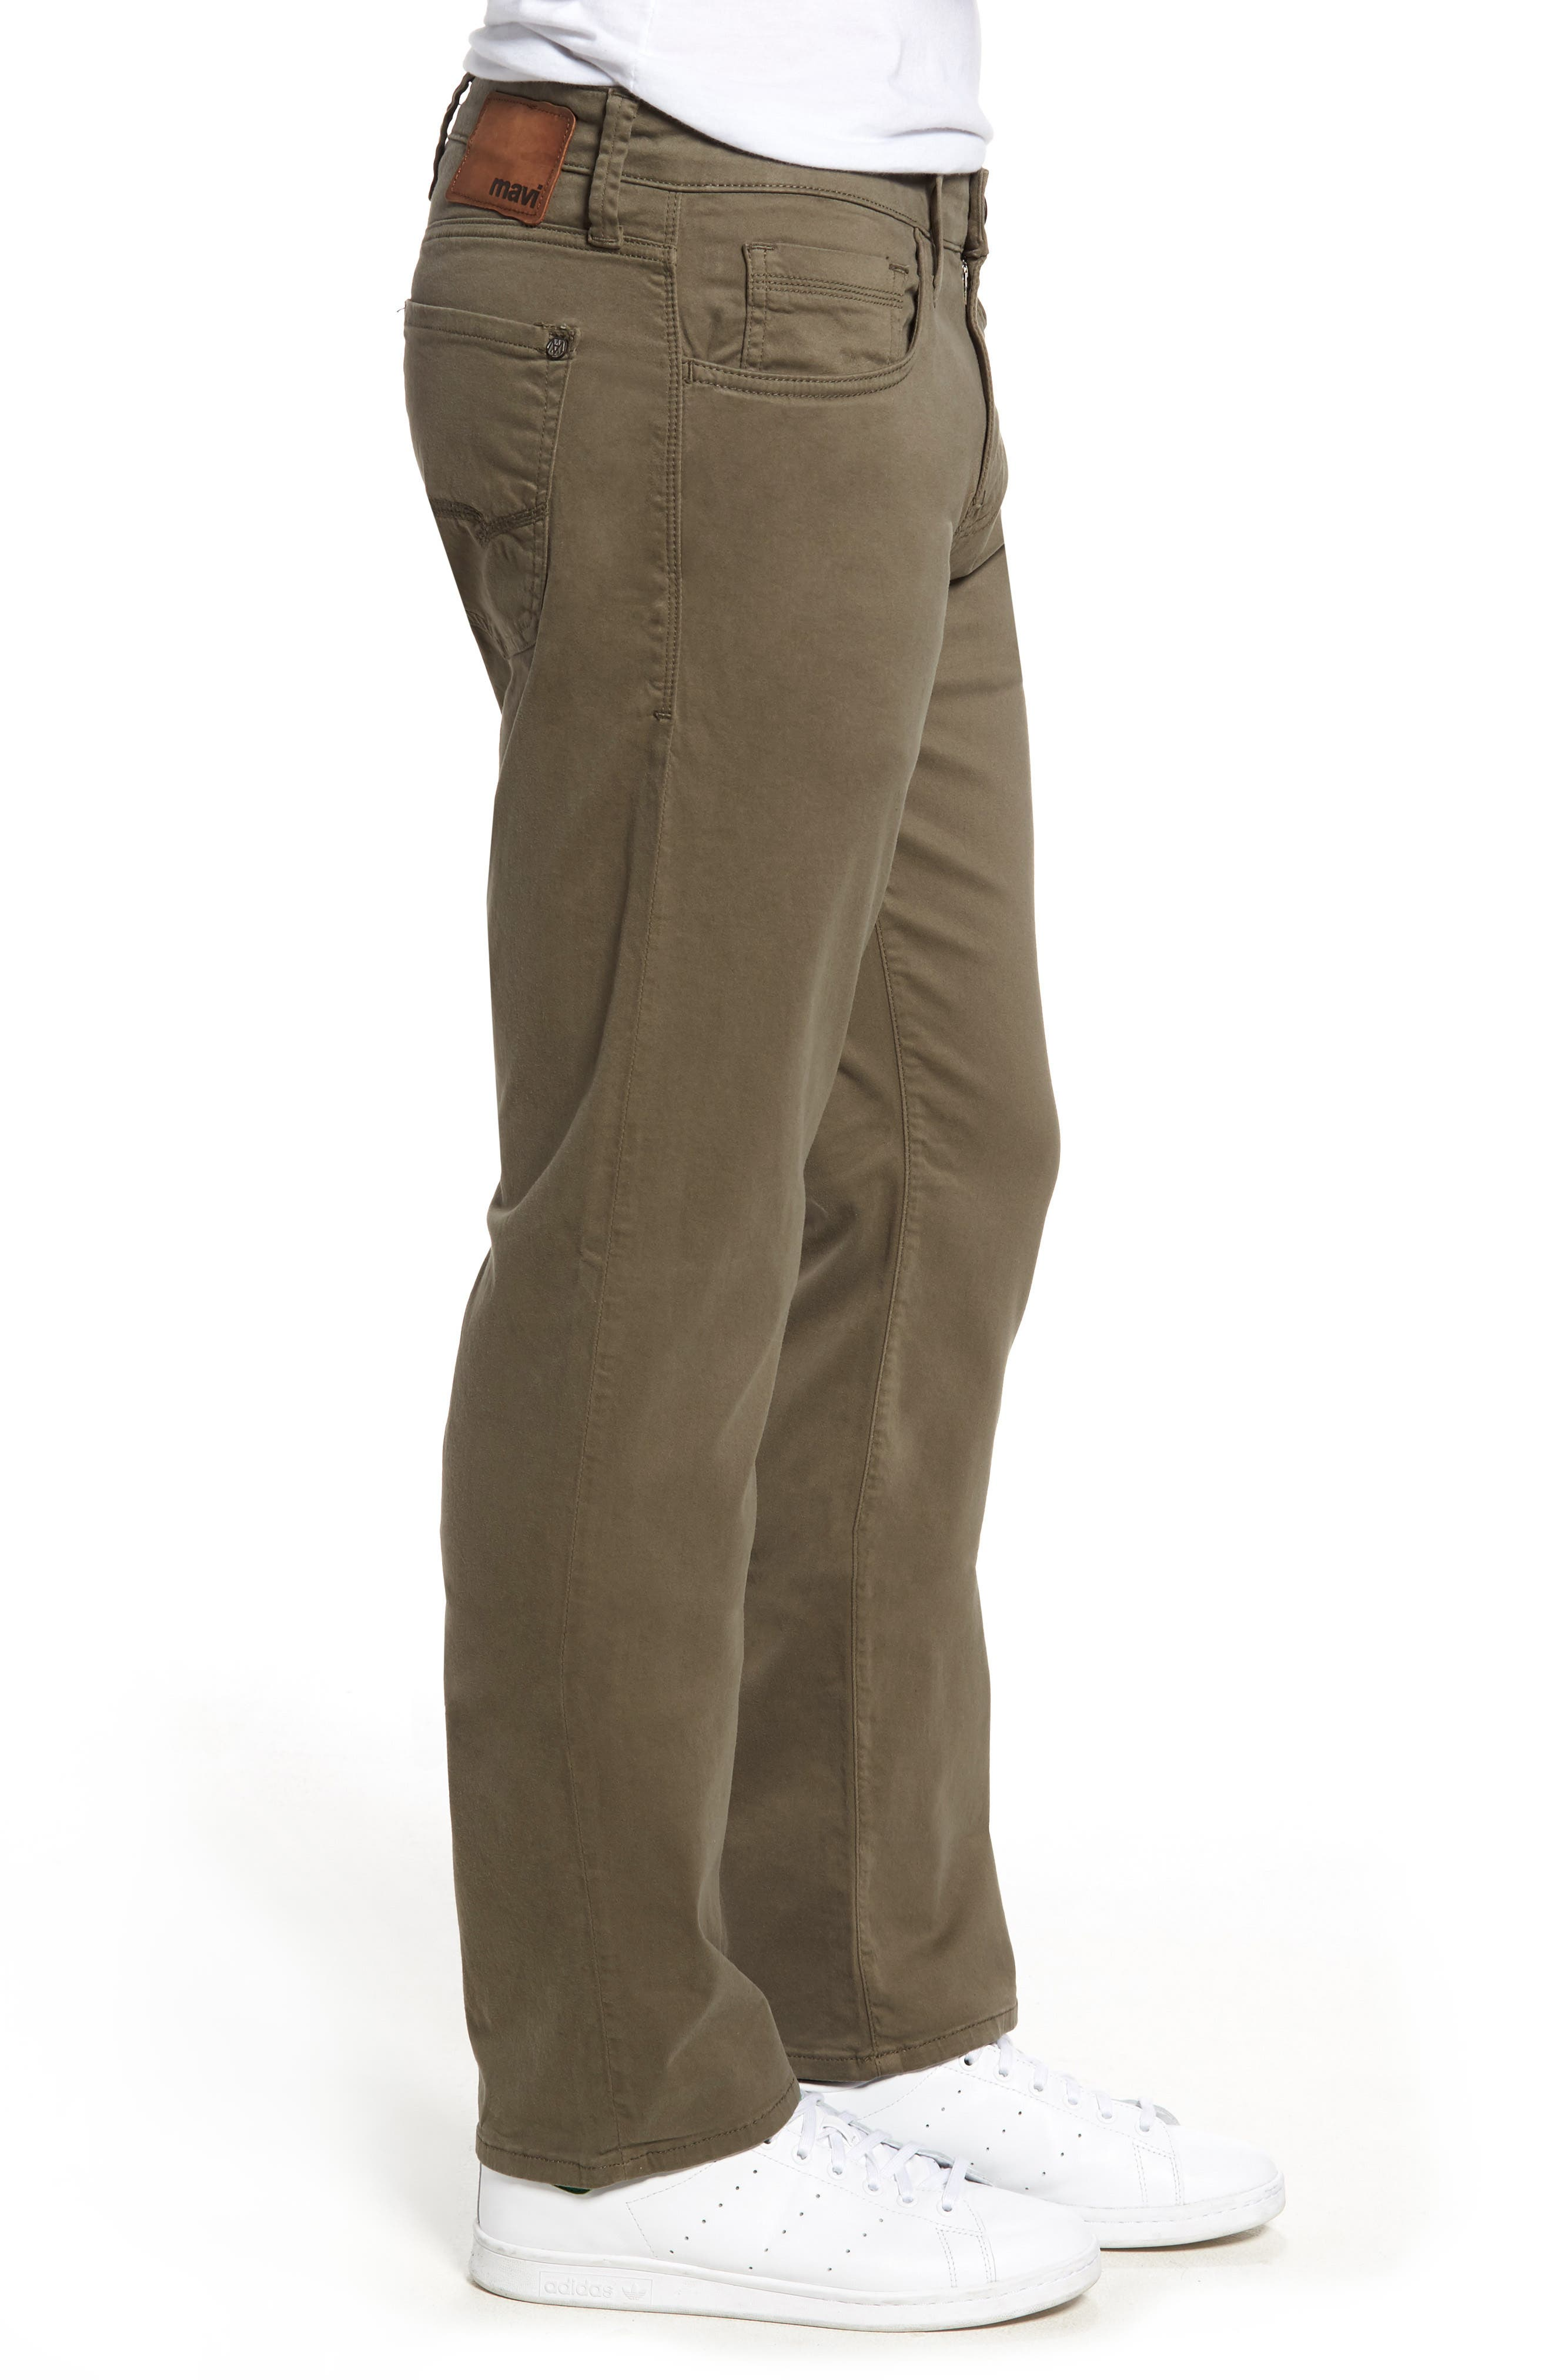 Zach Straight Fit Twill Pants,                             Alternate thumbnail 3, color,                             Dusty Olive Twill